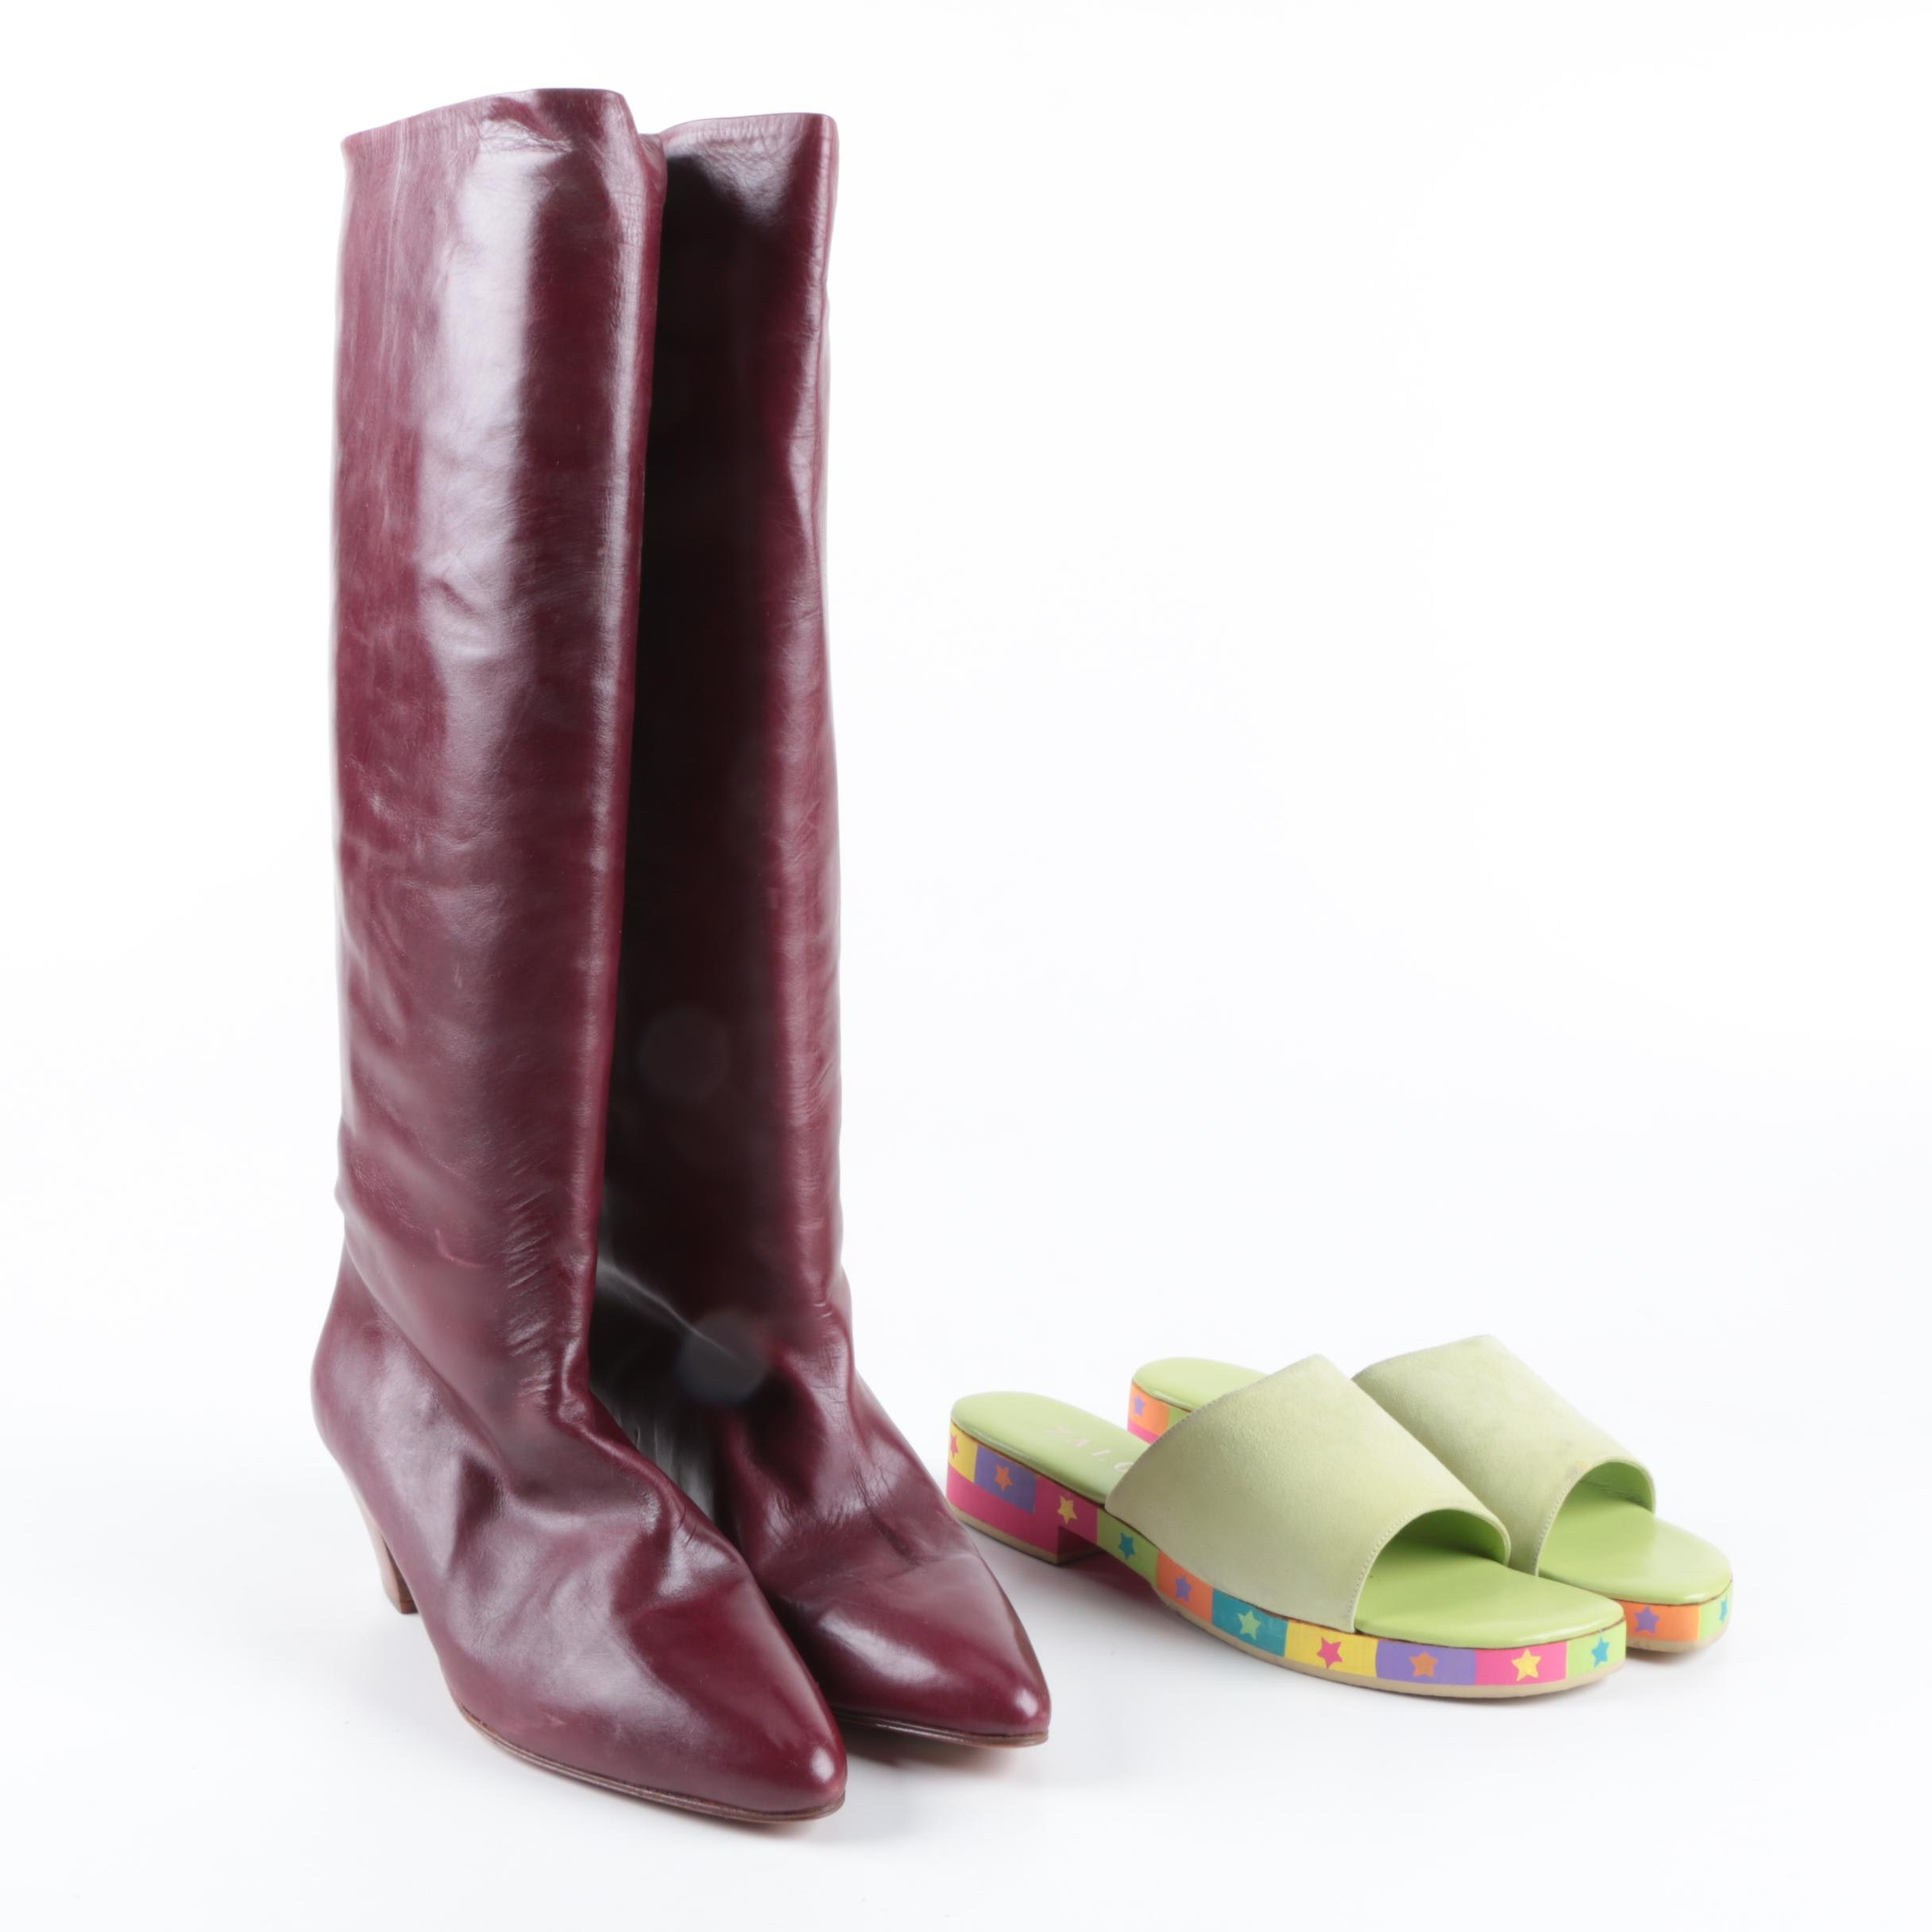 Women's Italian Leather Boots and Zalo Suede Slide Sandals